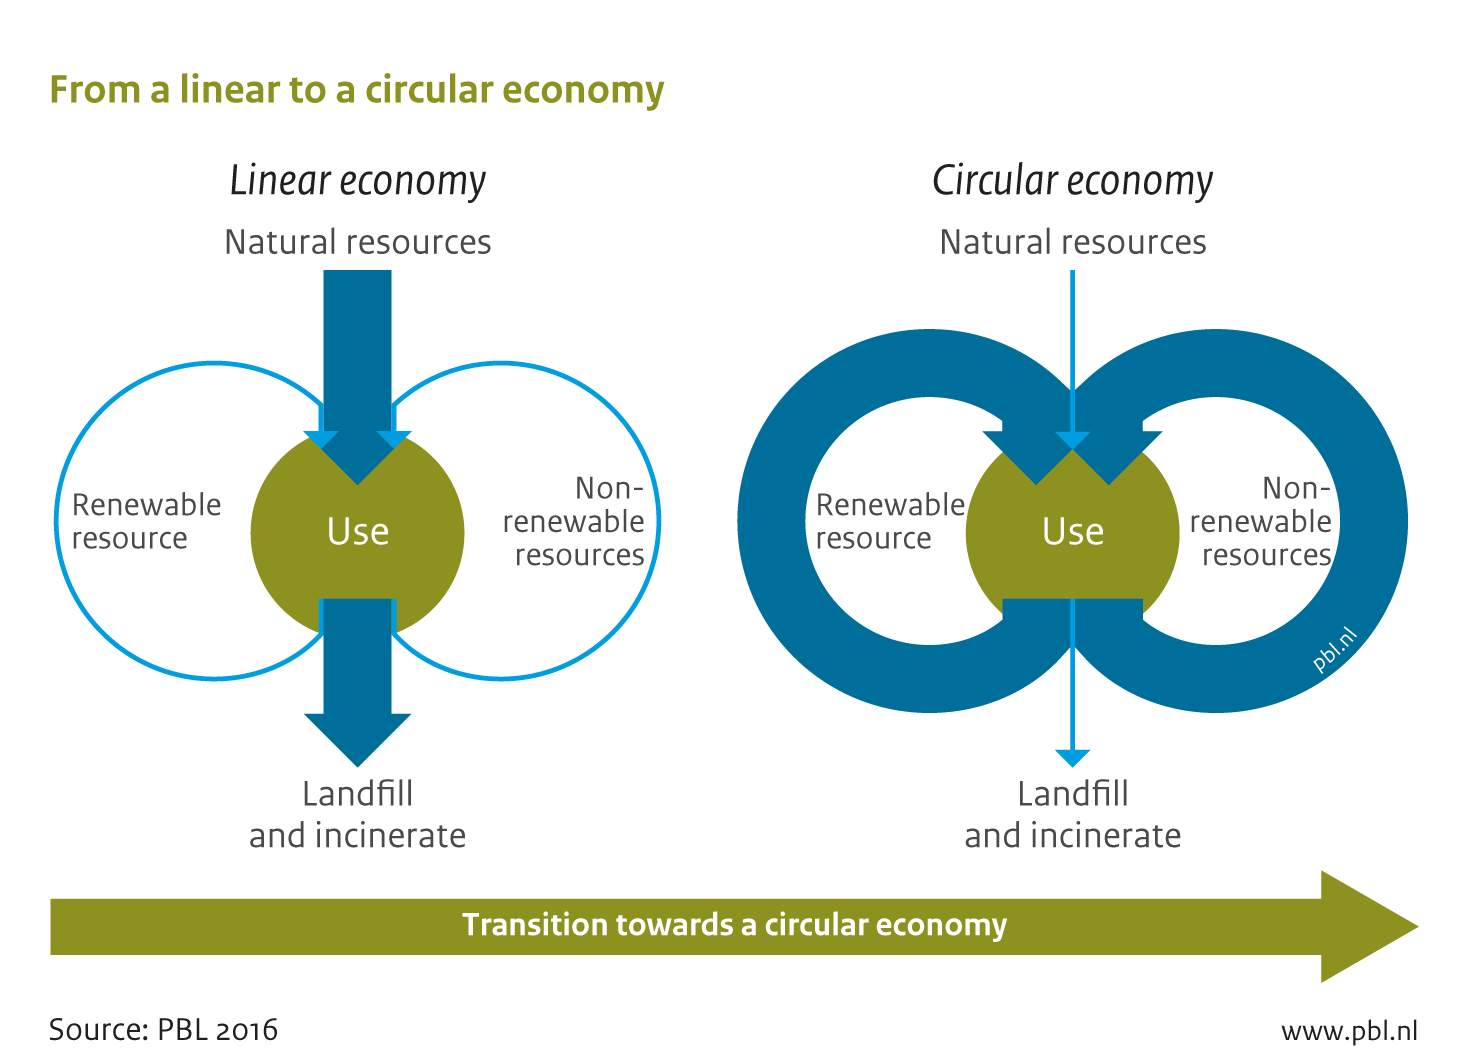 The circular economy is seen as a logical alternative to a linear economy. In a linear economy, natural resources are extracted for producing materials that are manufactured in products to be incinerated or landfilled after use. The essence of a circular economy is to preserve natural resources by retaining the quality and value of products and their parts, and the materials.